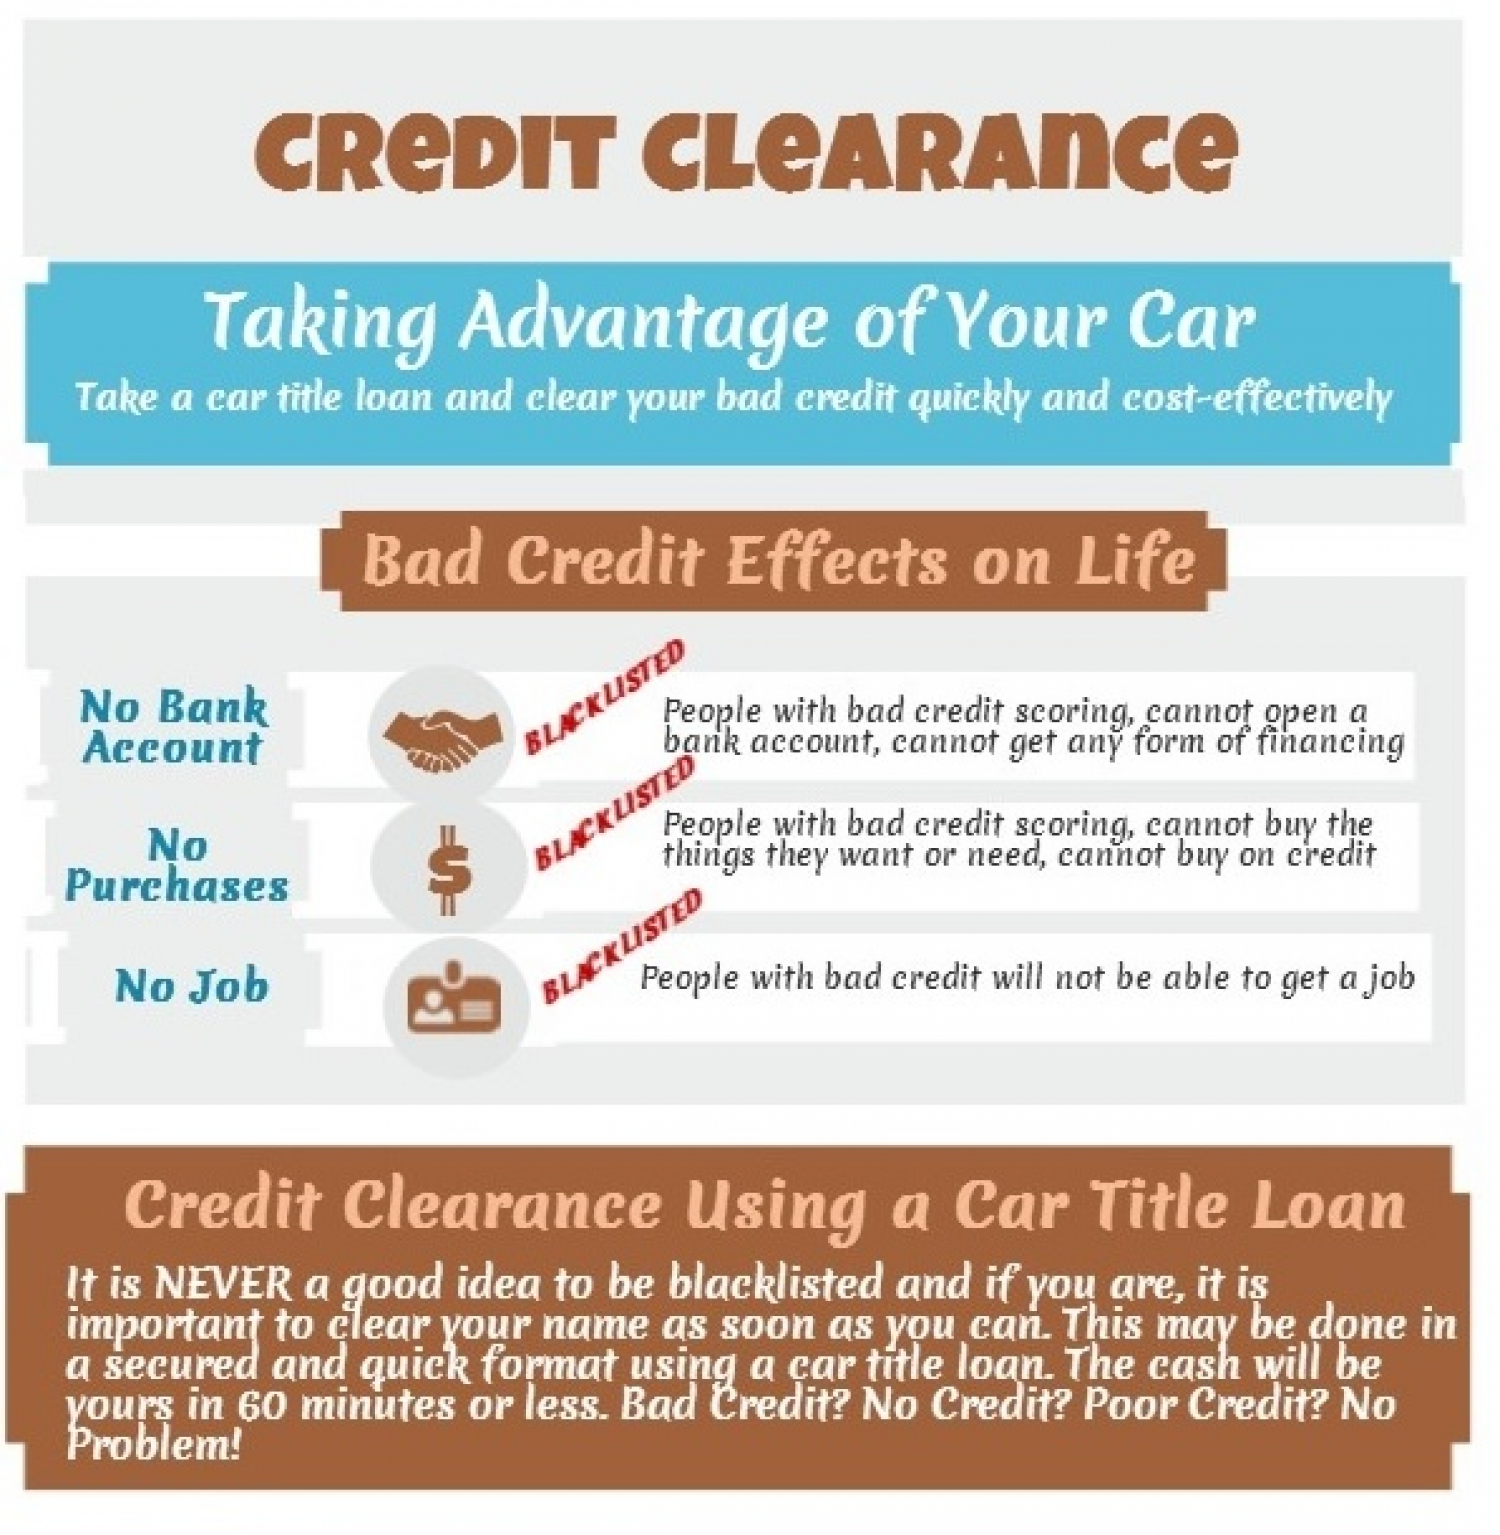 Credit Clearance Infographic